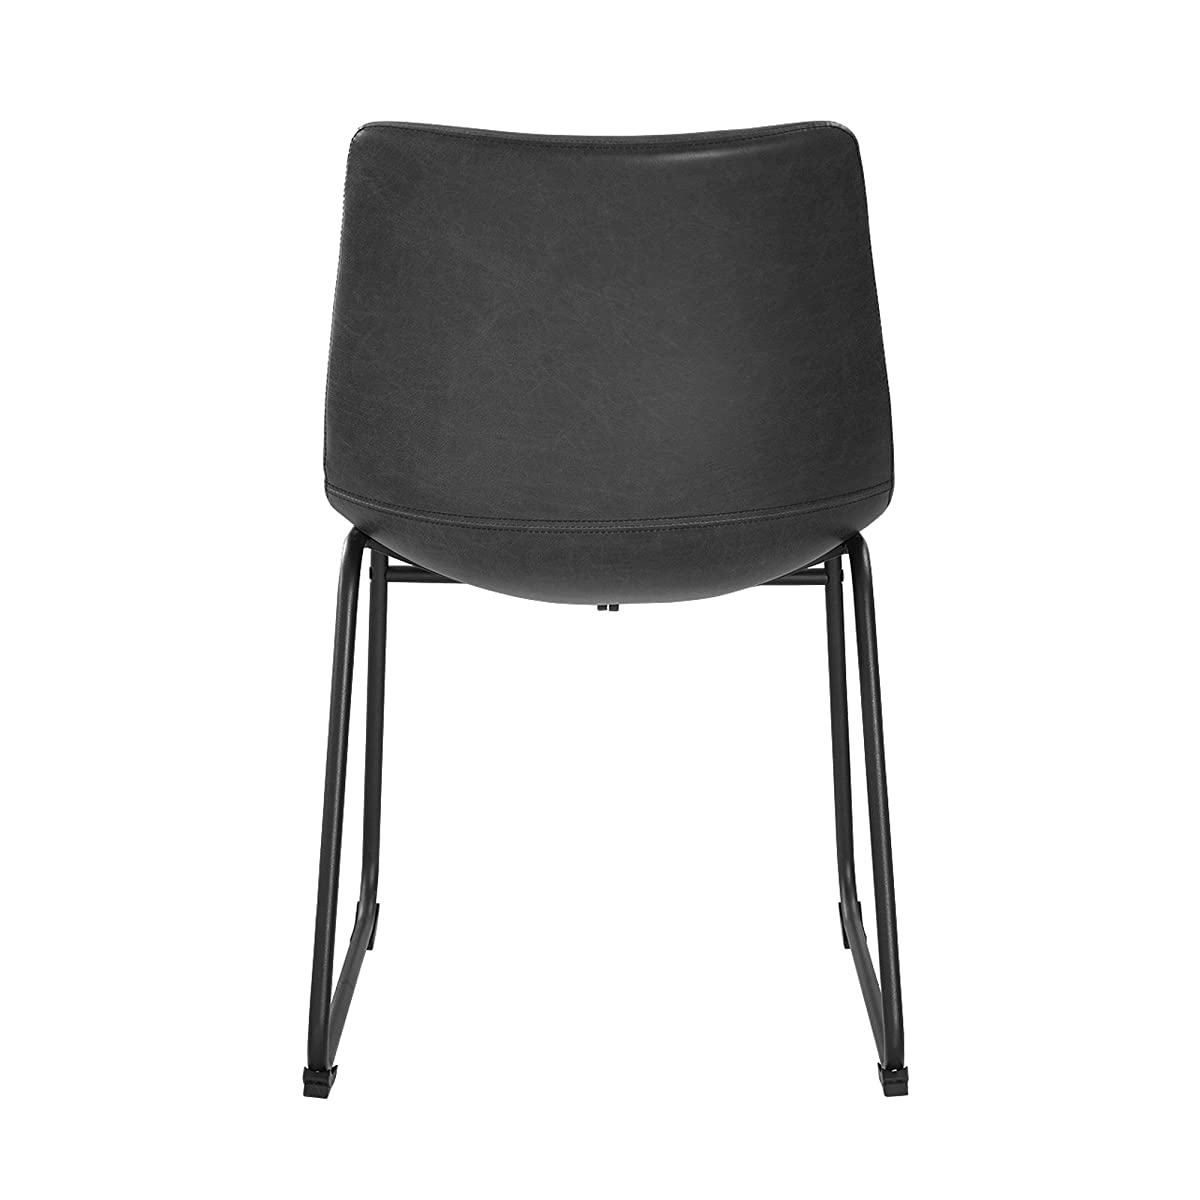 WE Furniture Black Faux Leather Dining Chairs, Set of 2